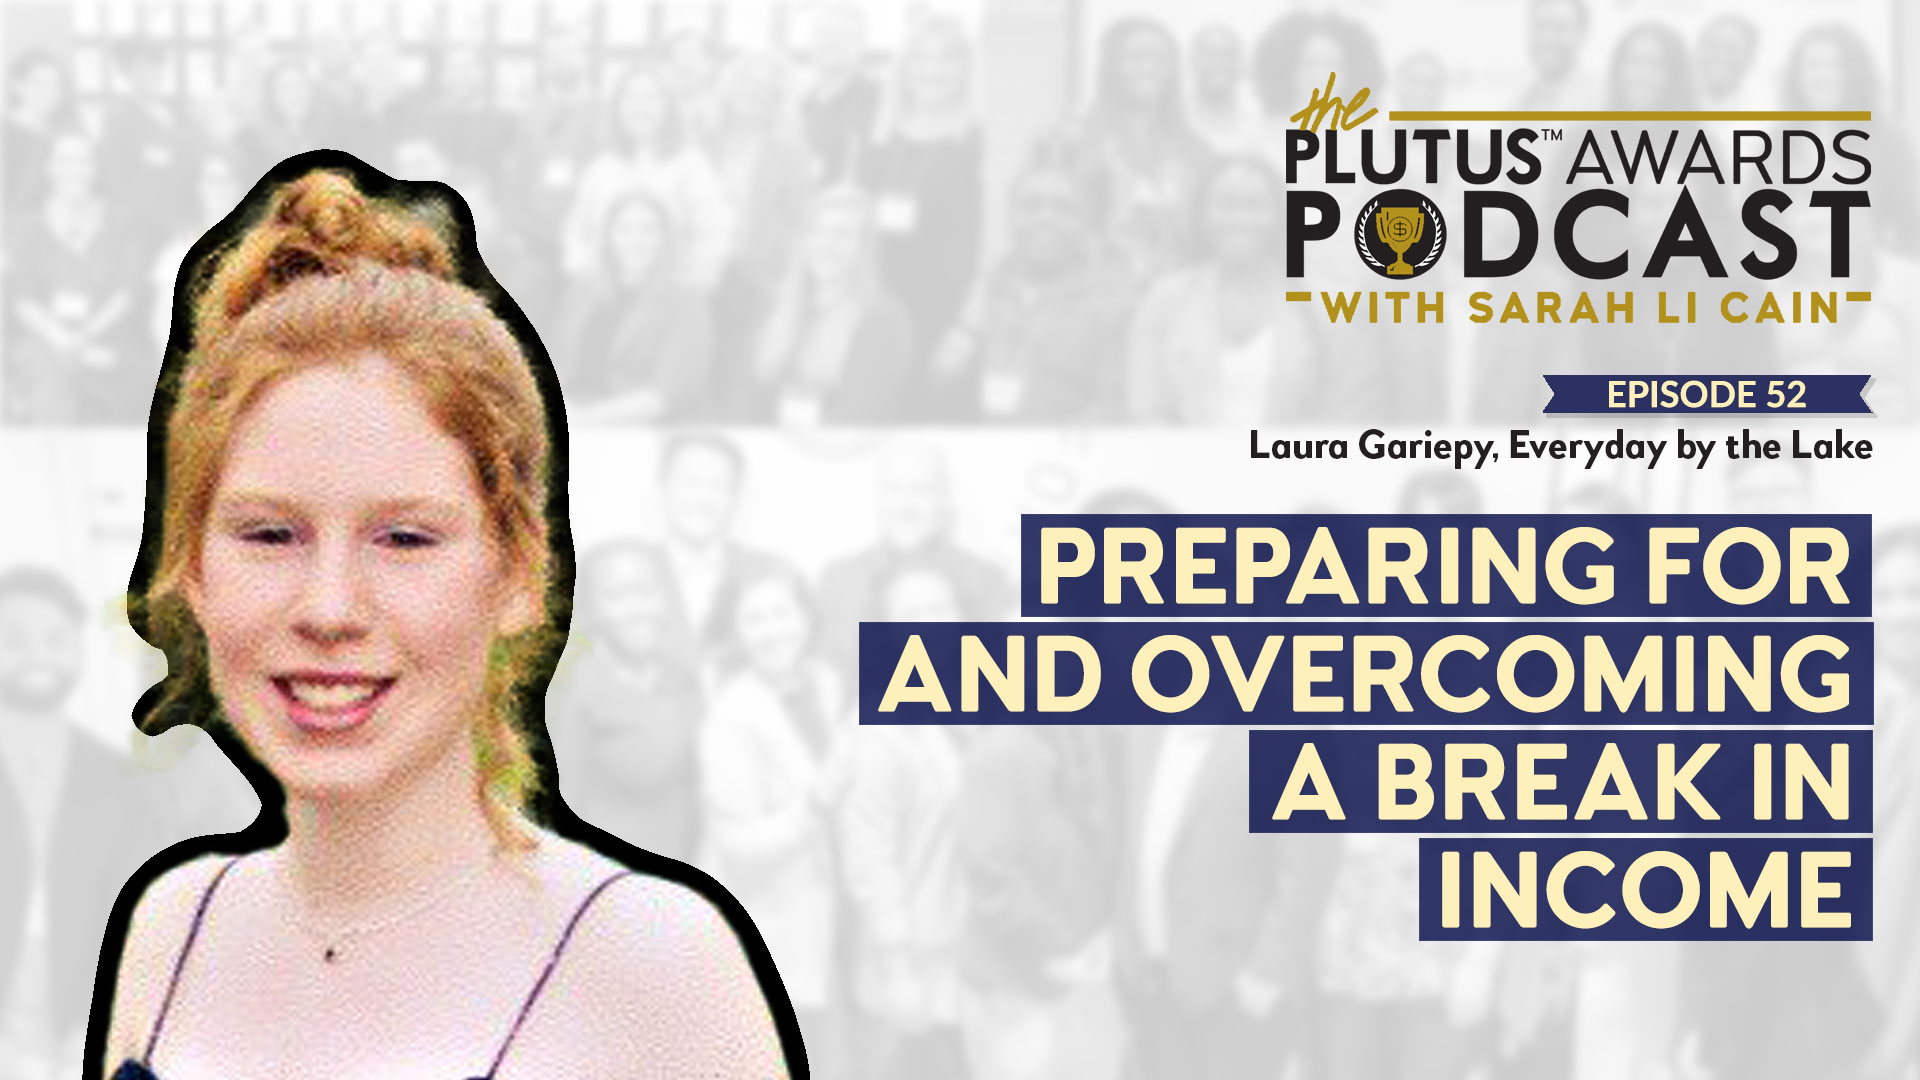 Plutus Awards Podcast Laura Gariepy Featured Image